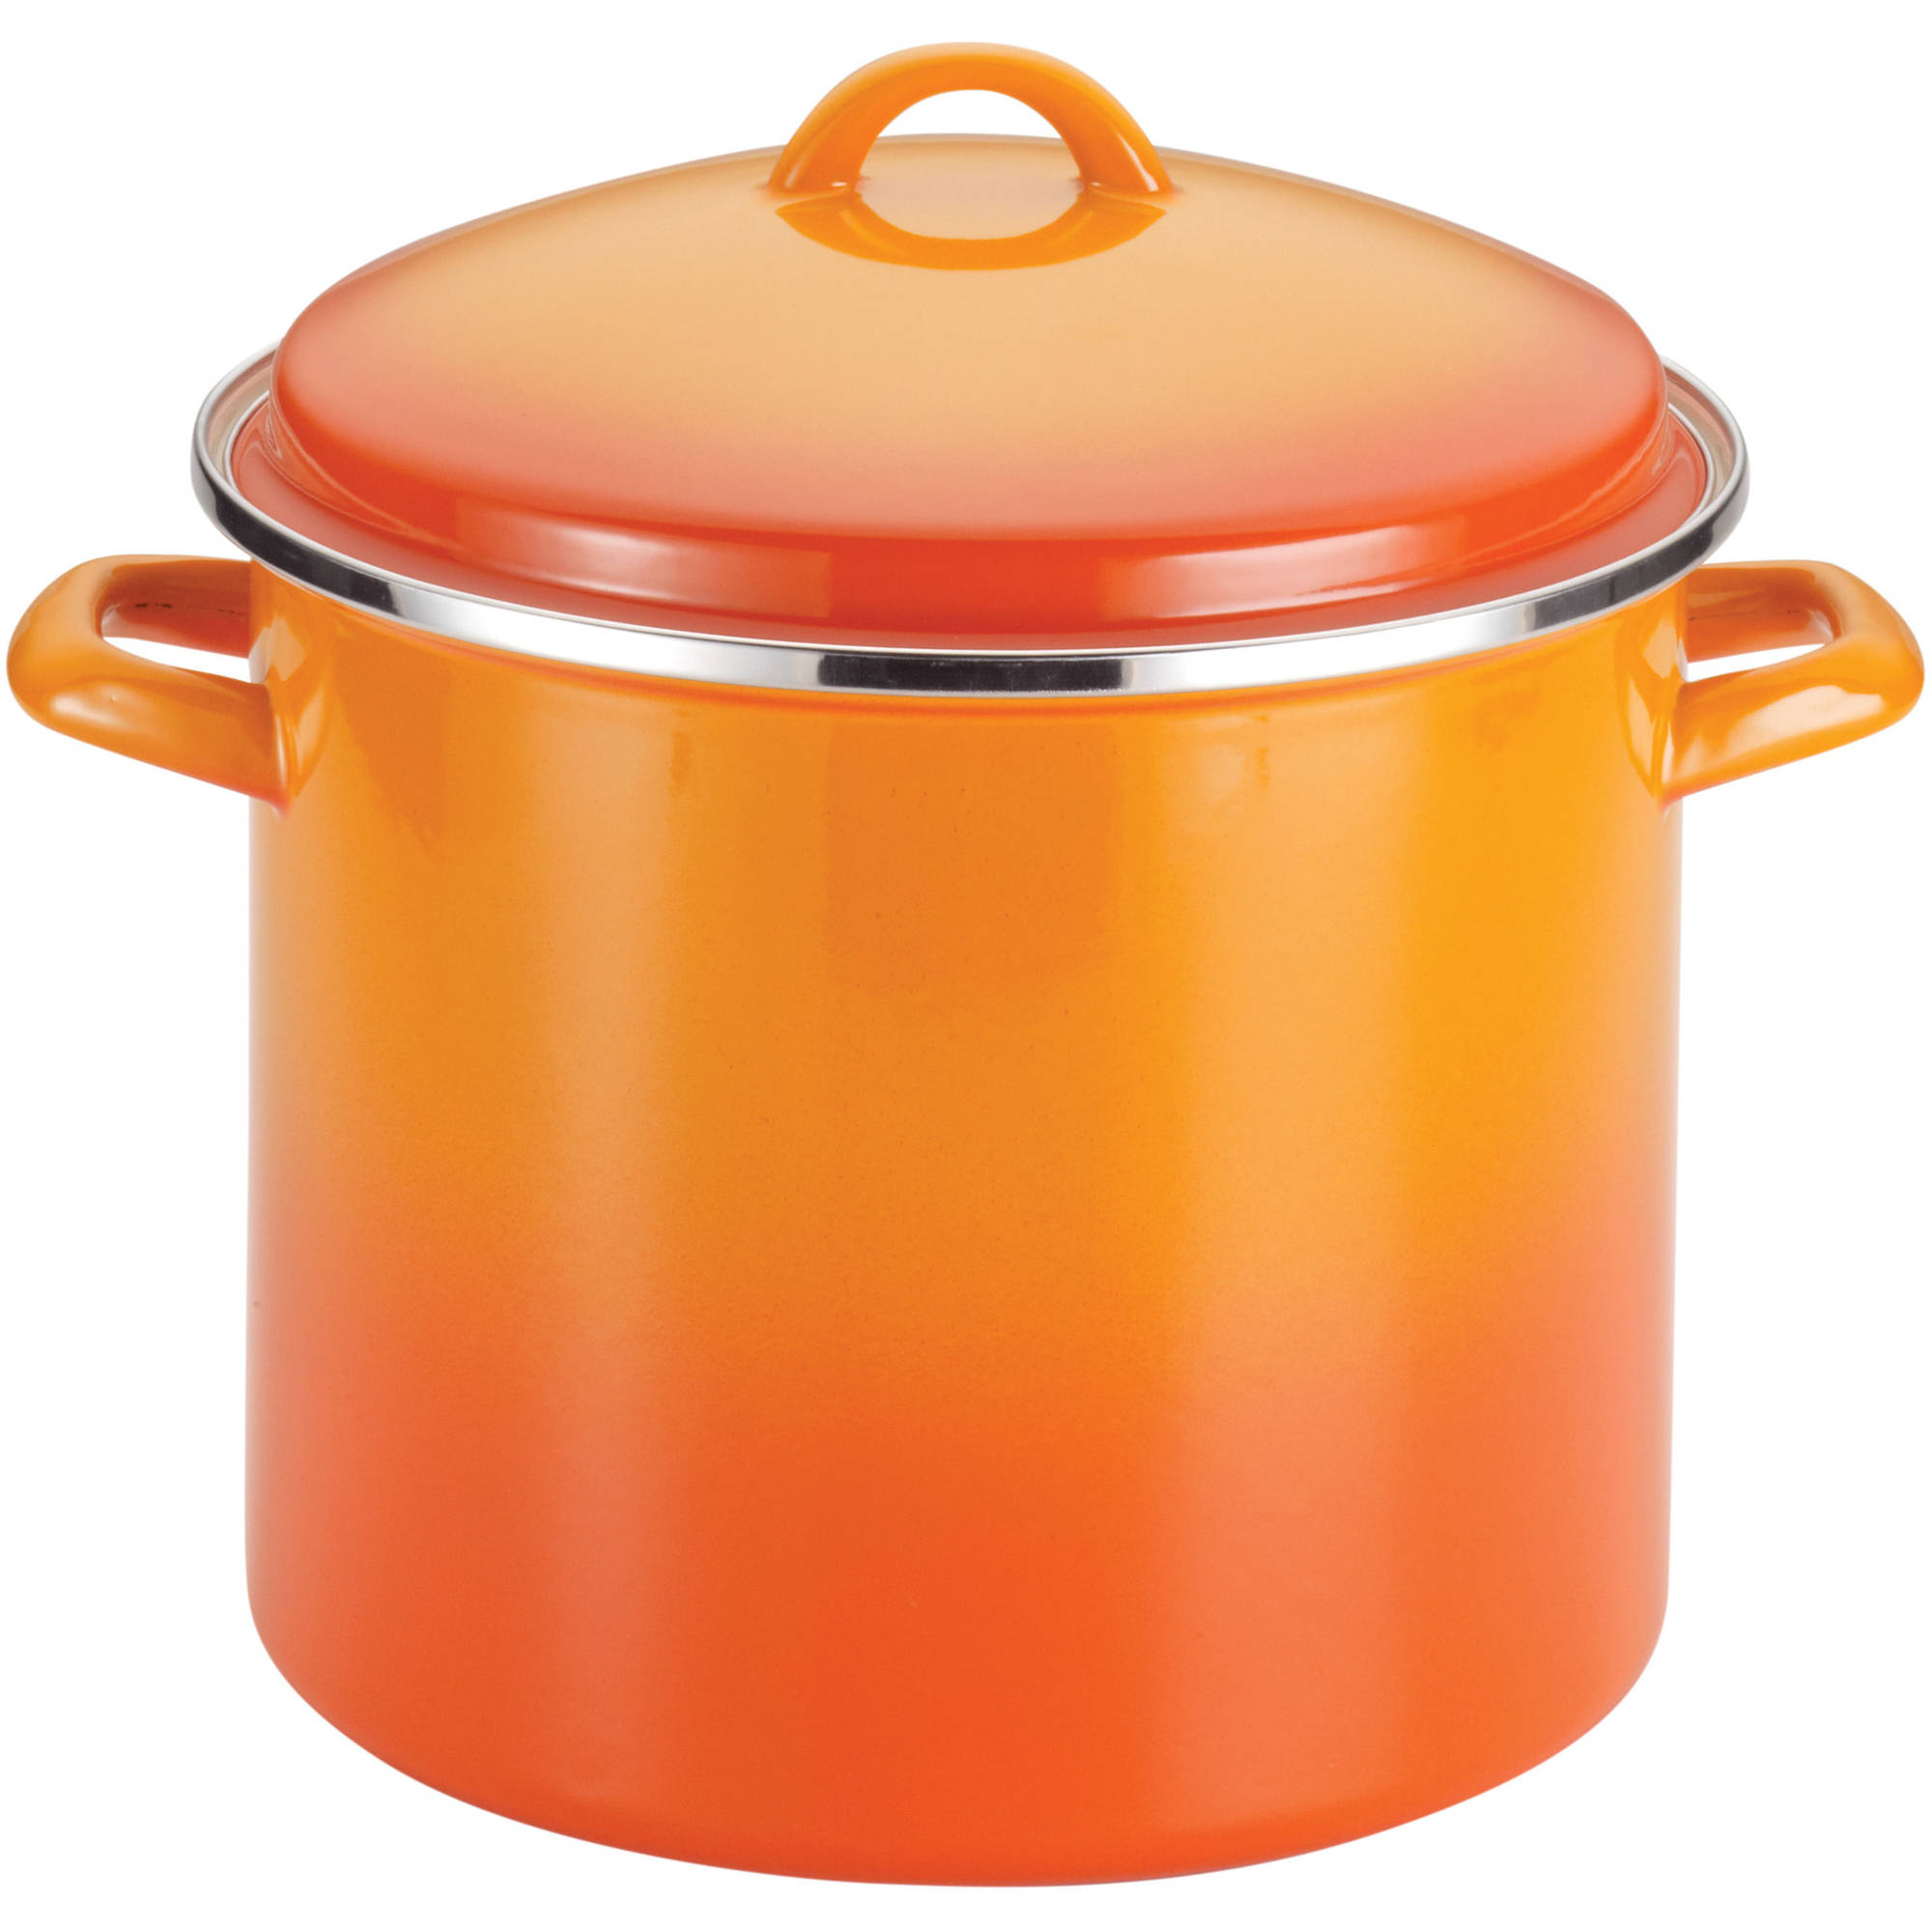 Rachael Ray Enamel Covered Steel 12 Quart Stockpot, 1 Each